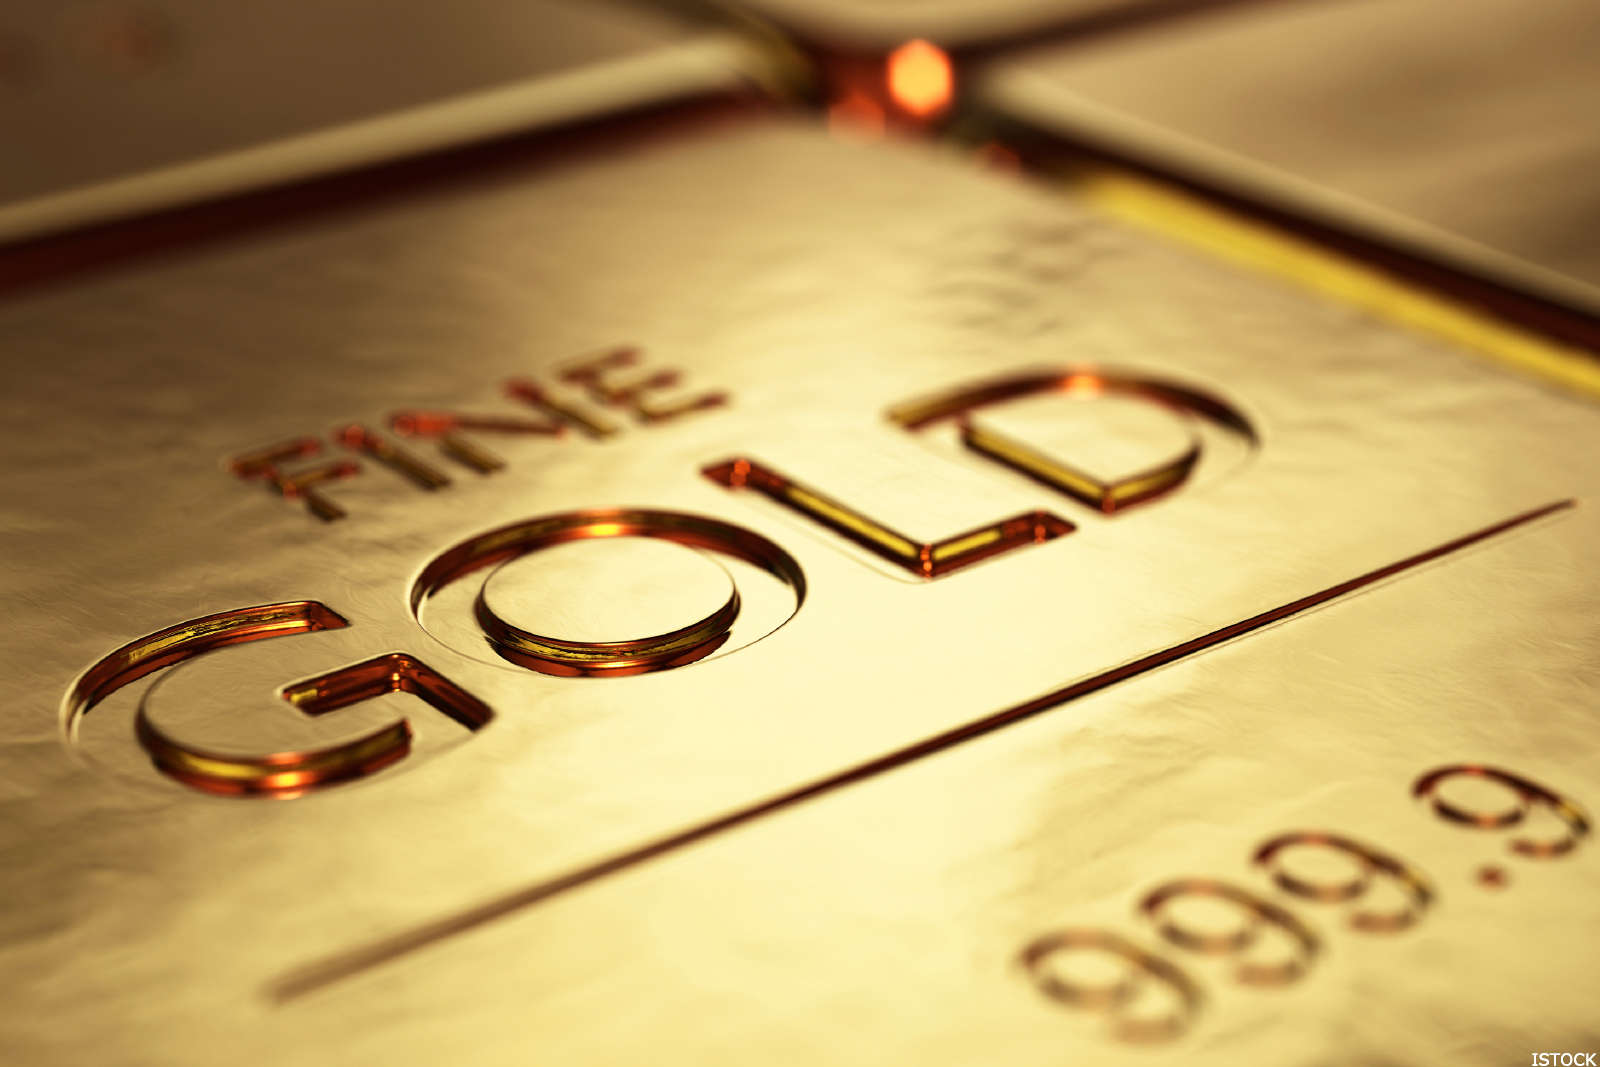 The real trump trade may be gold cramers mad money recap the real trump trade may be gold cramers mad money recap tuesday 41117 thestreet buycottarizona Image collections